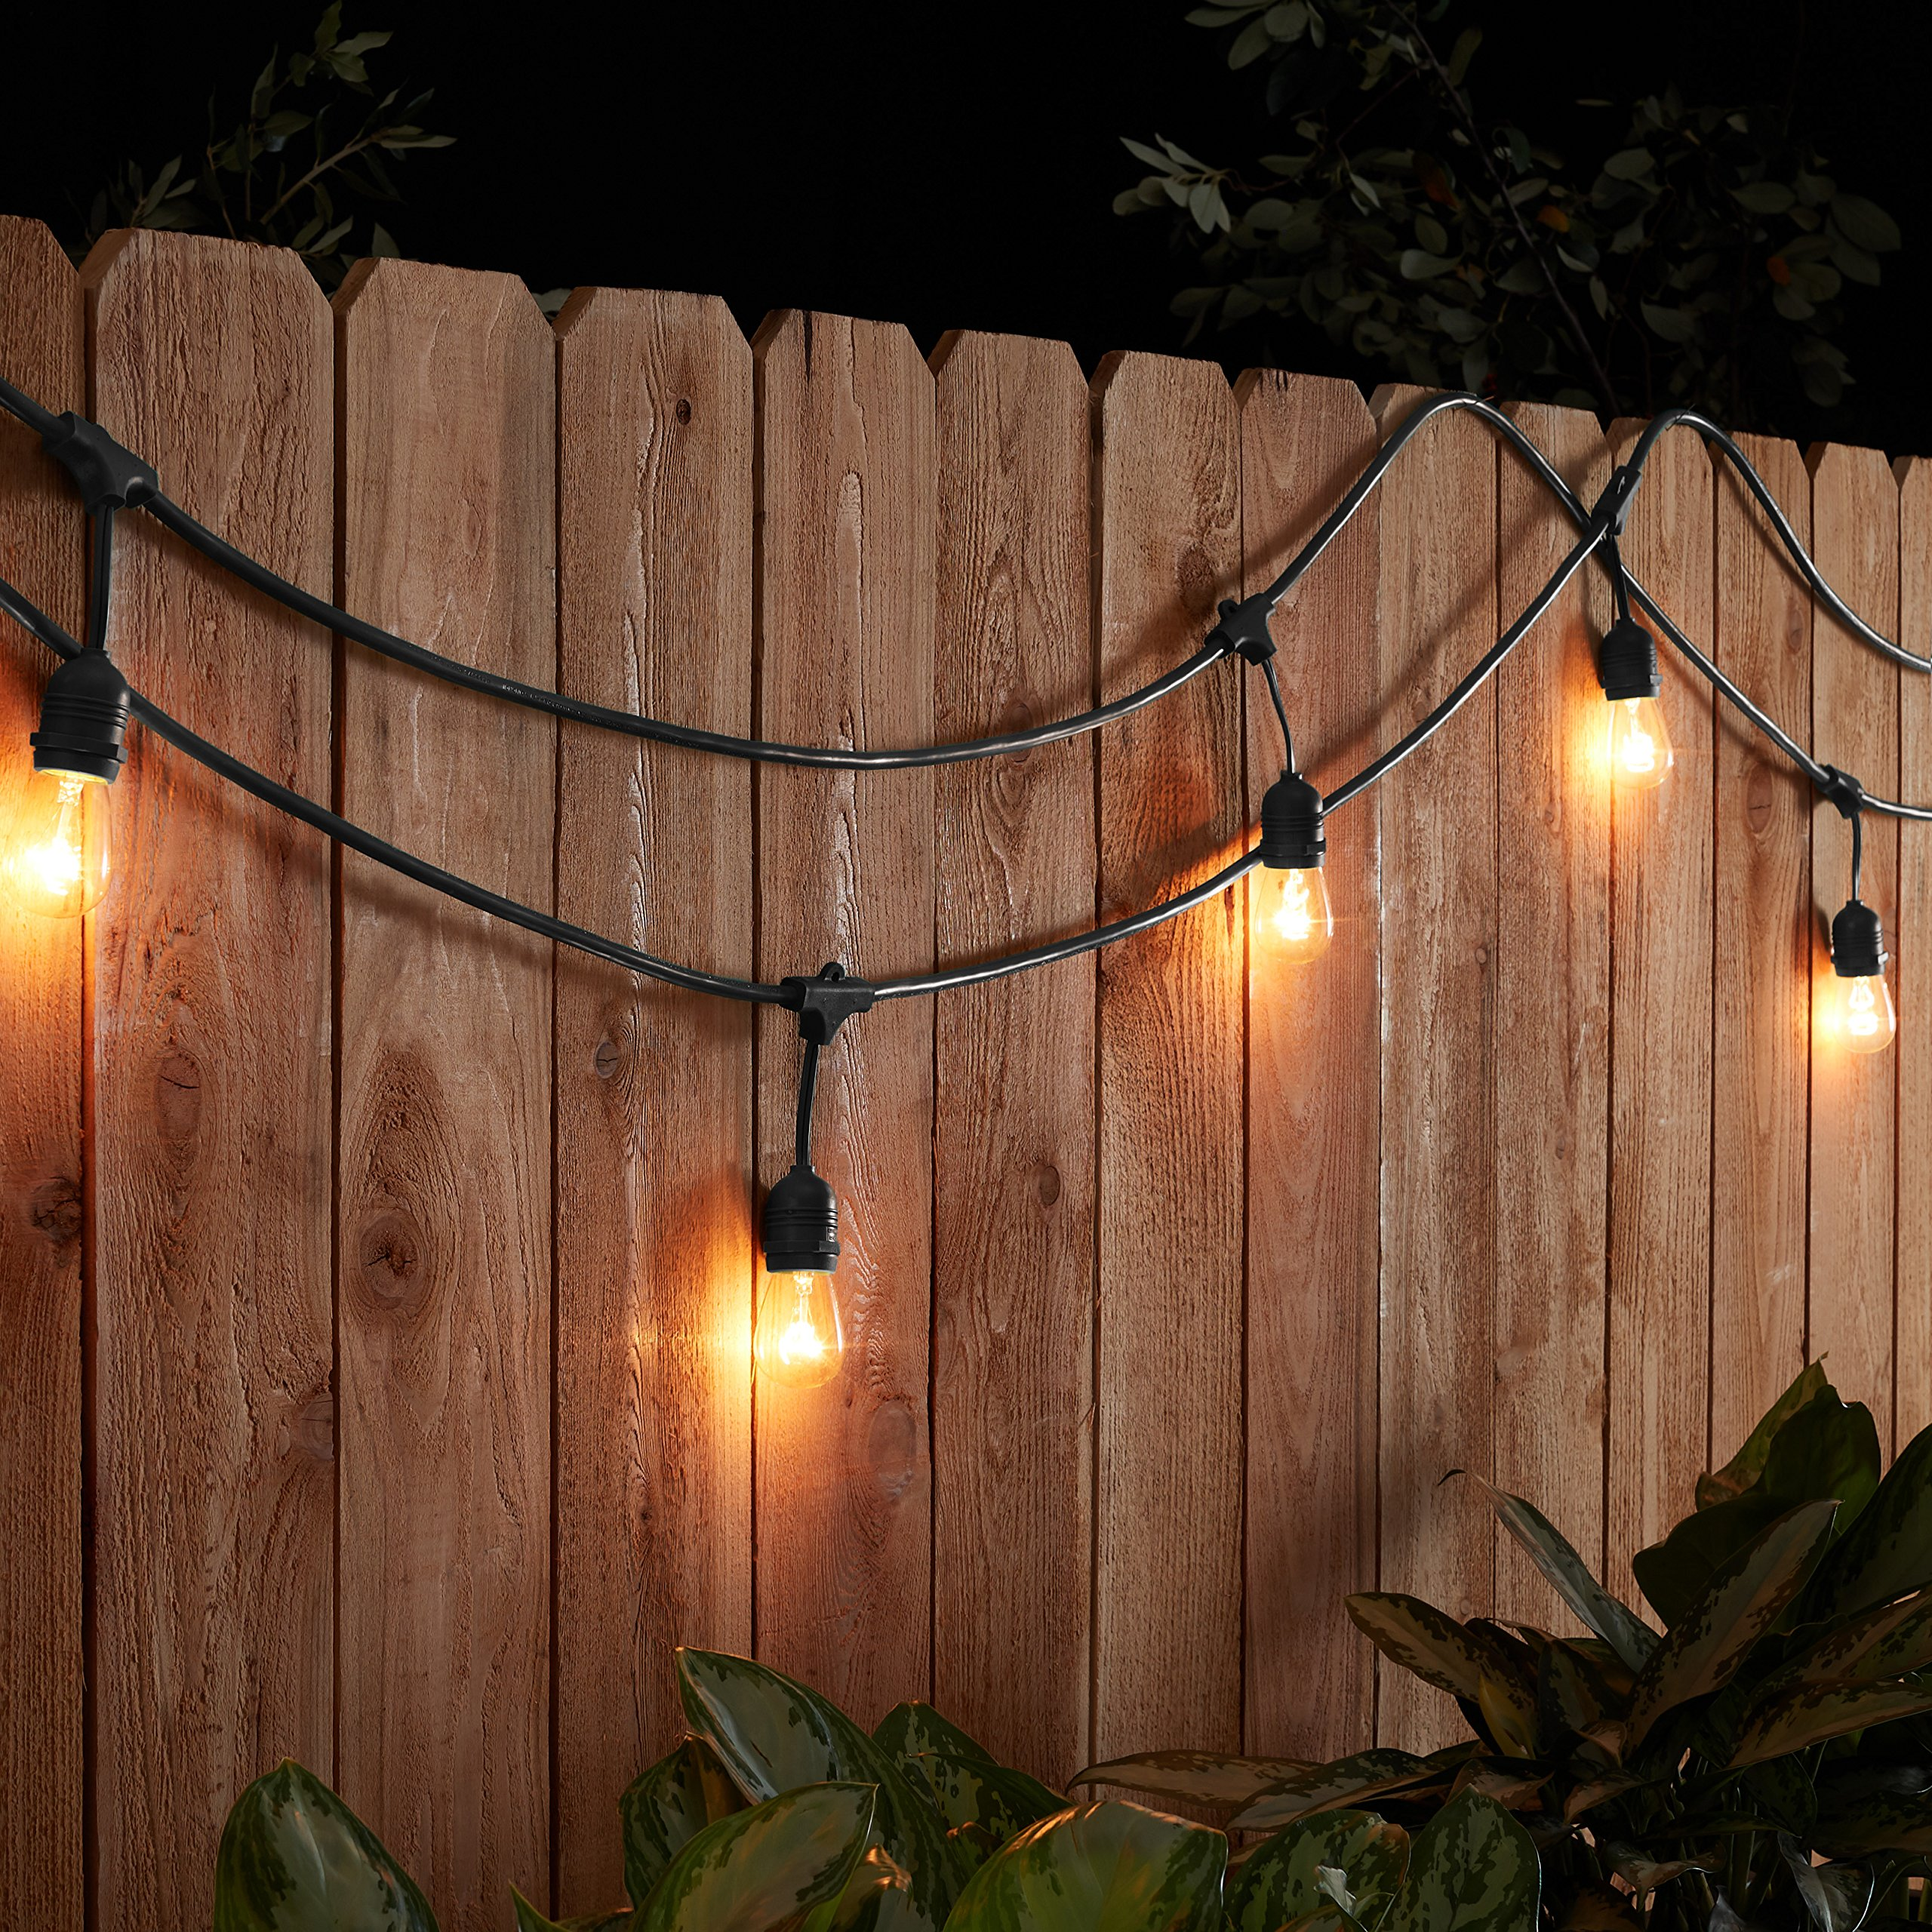 AmazonBasics Weatherproof Outdoor Patio String Lights S14 Bulb, Black, 48-Foot by AmazonBasics (Image #3)